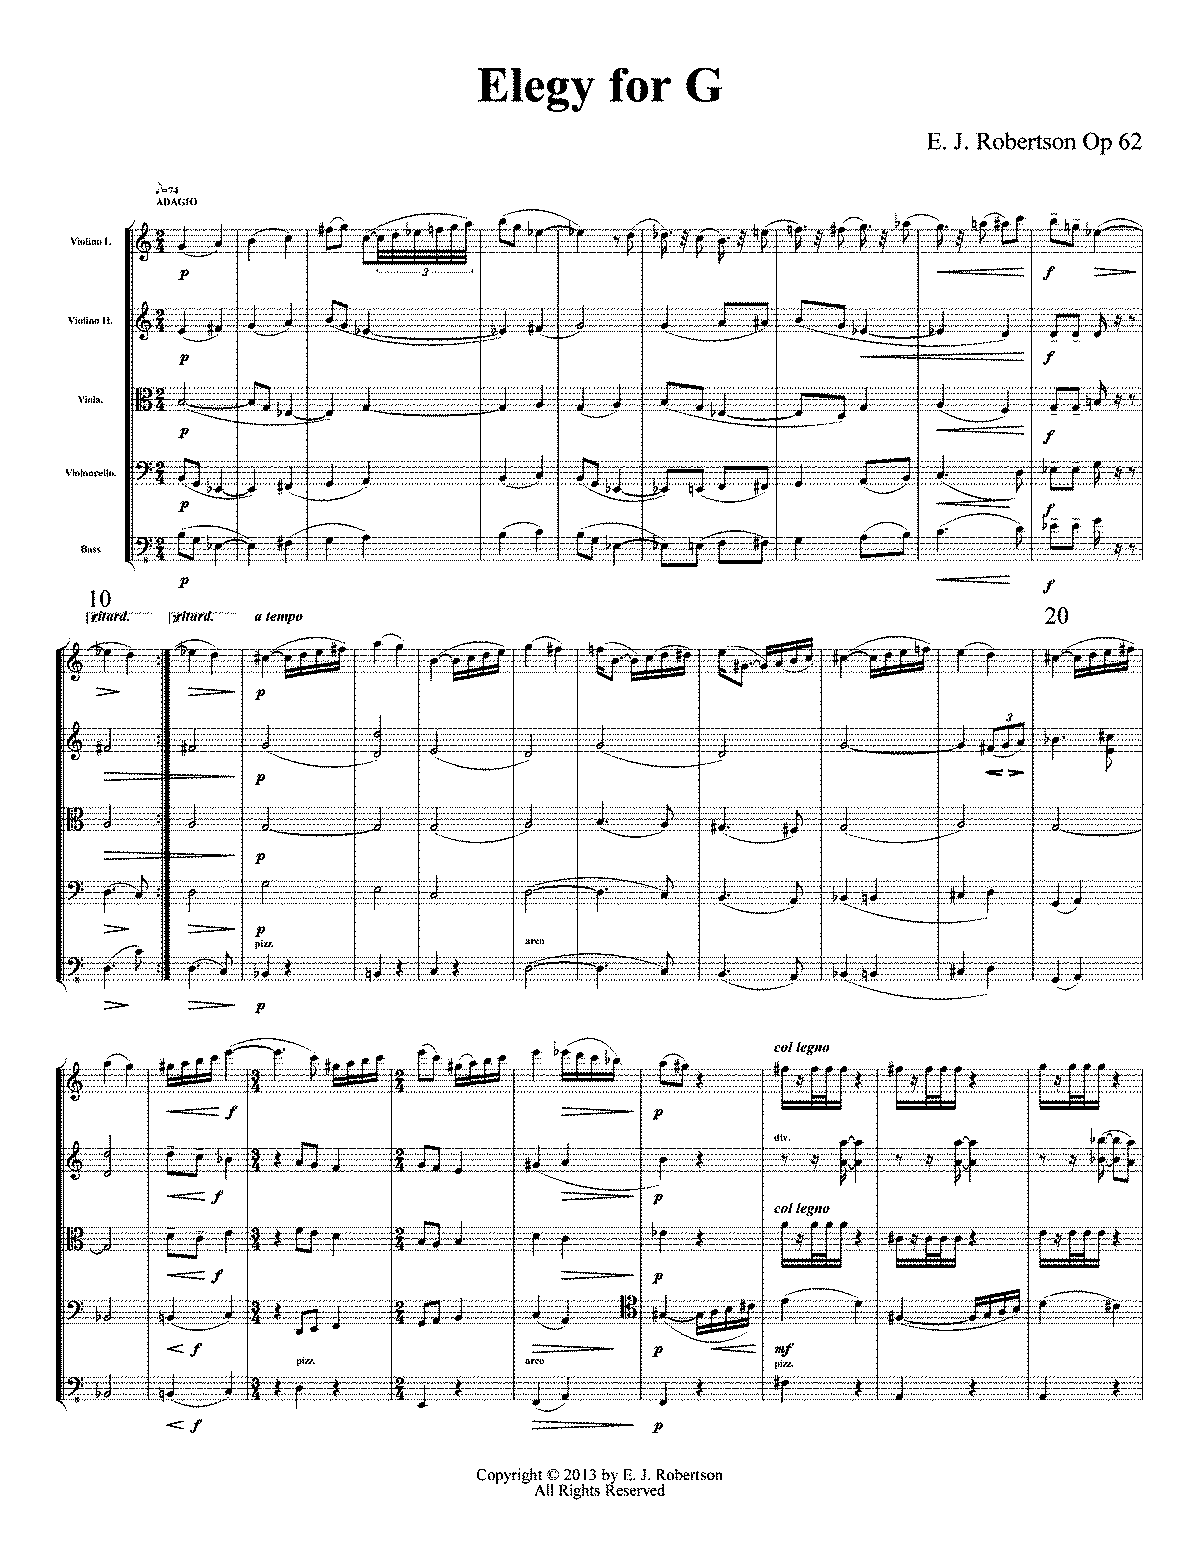 PMLP495825-Elegy for G SCORE.pdf